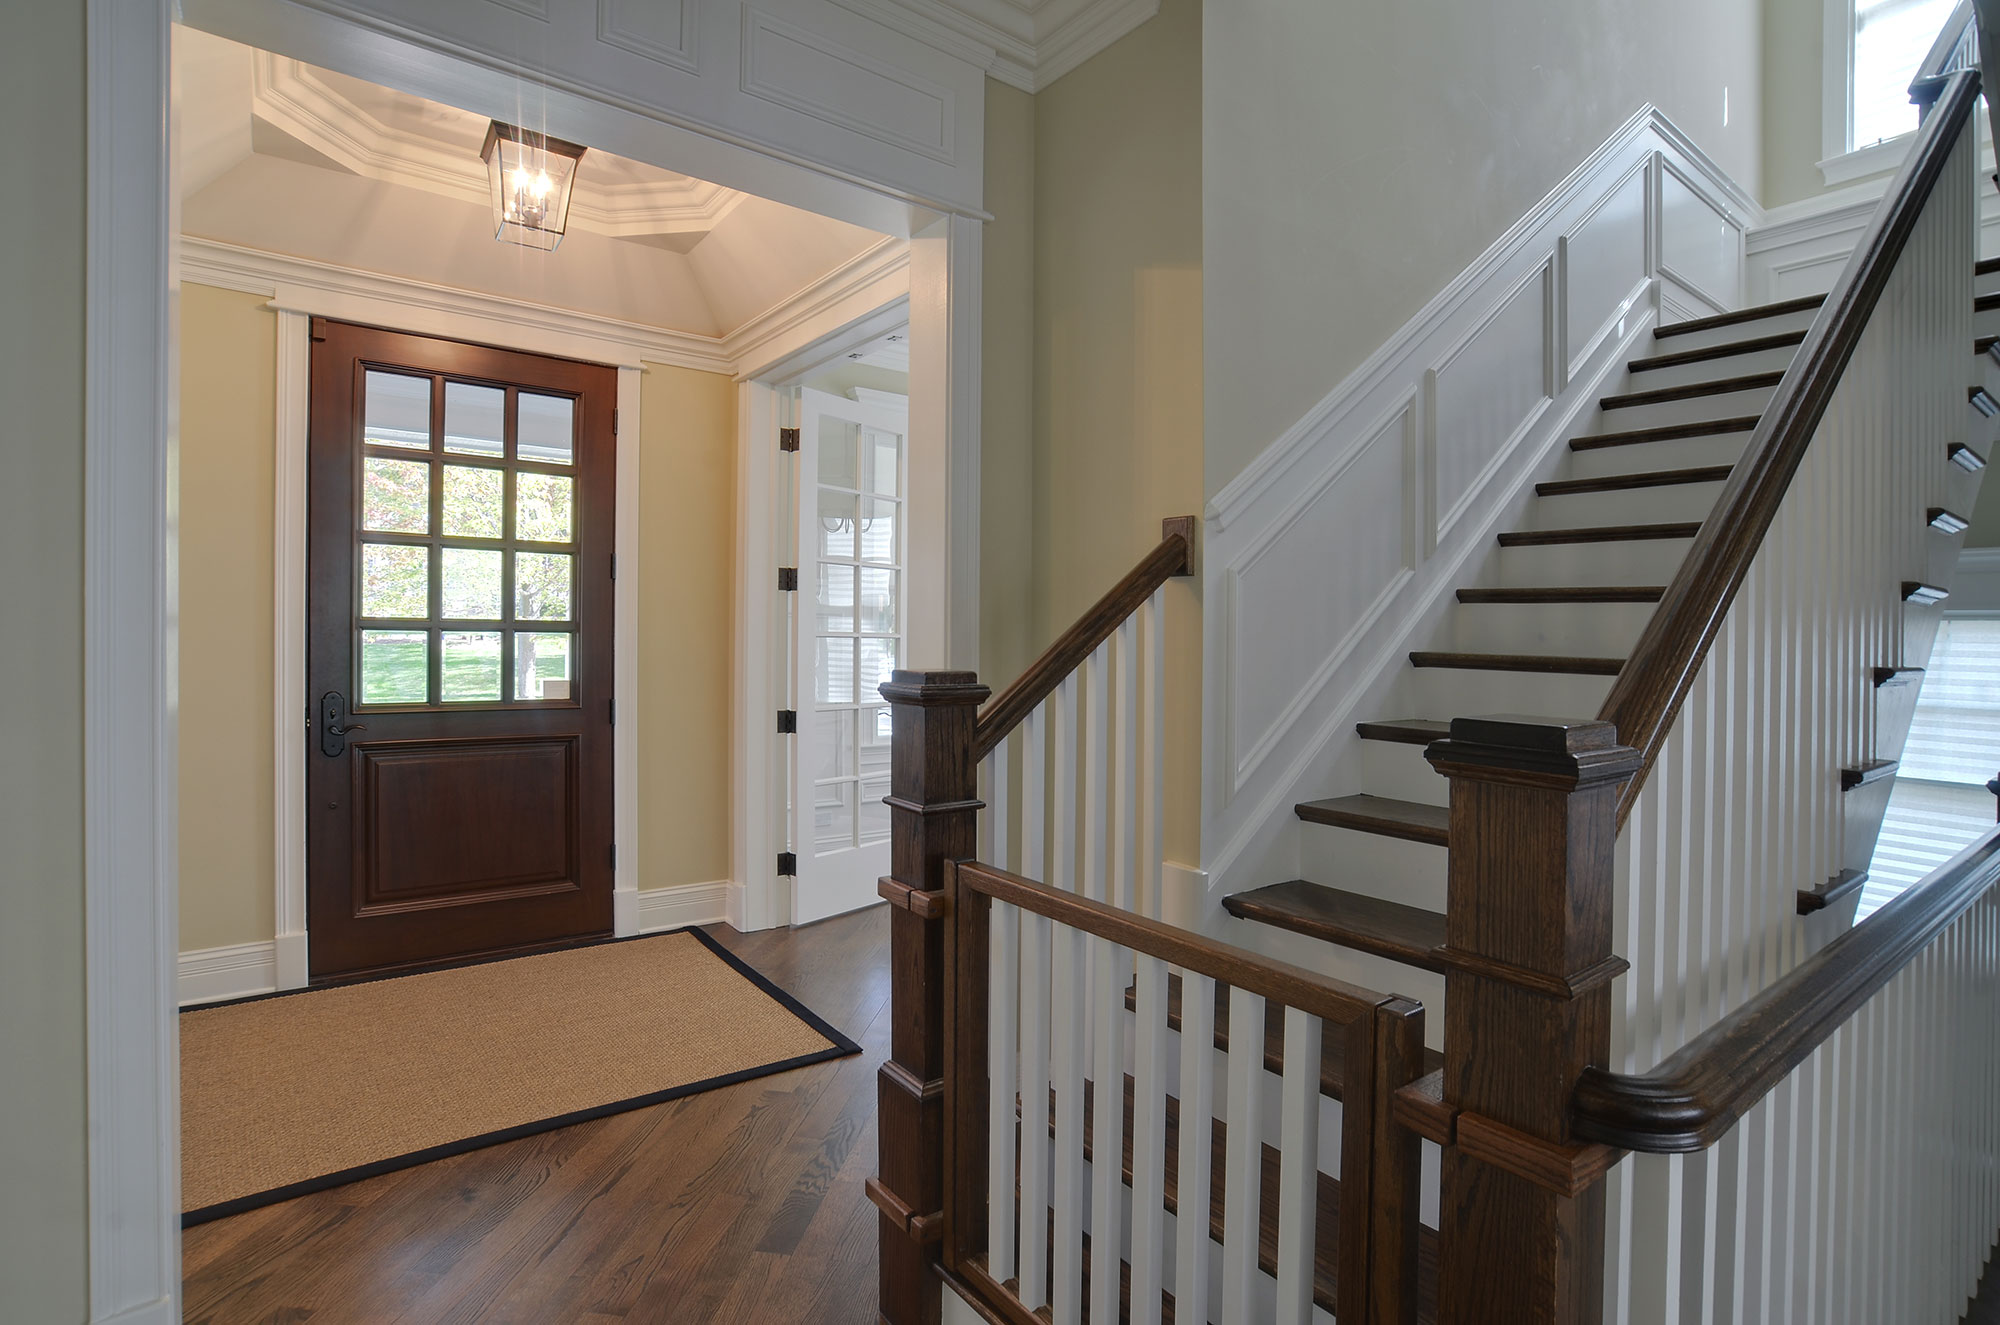 30 S. Bruner Custom Home Photo Gallery : stair door - pezcame.com